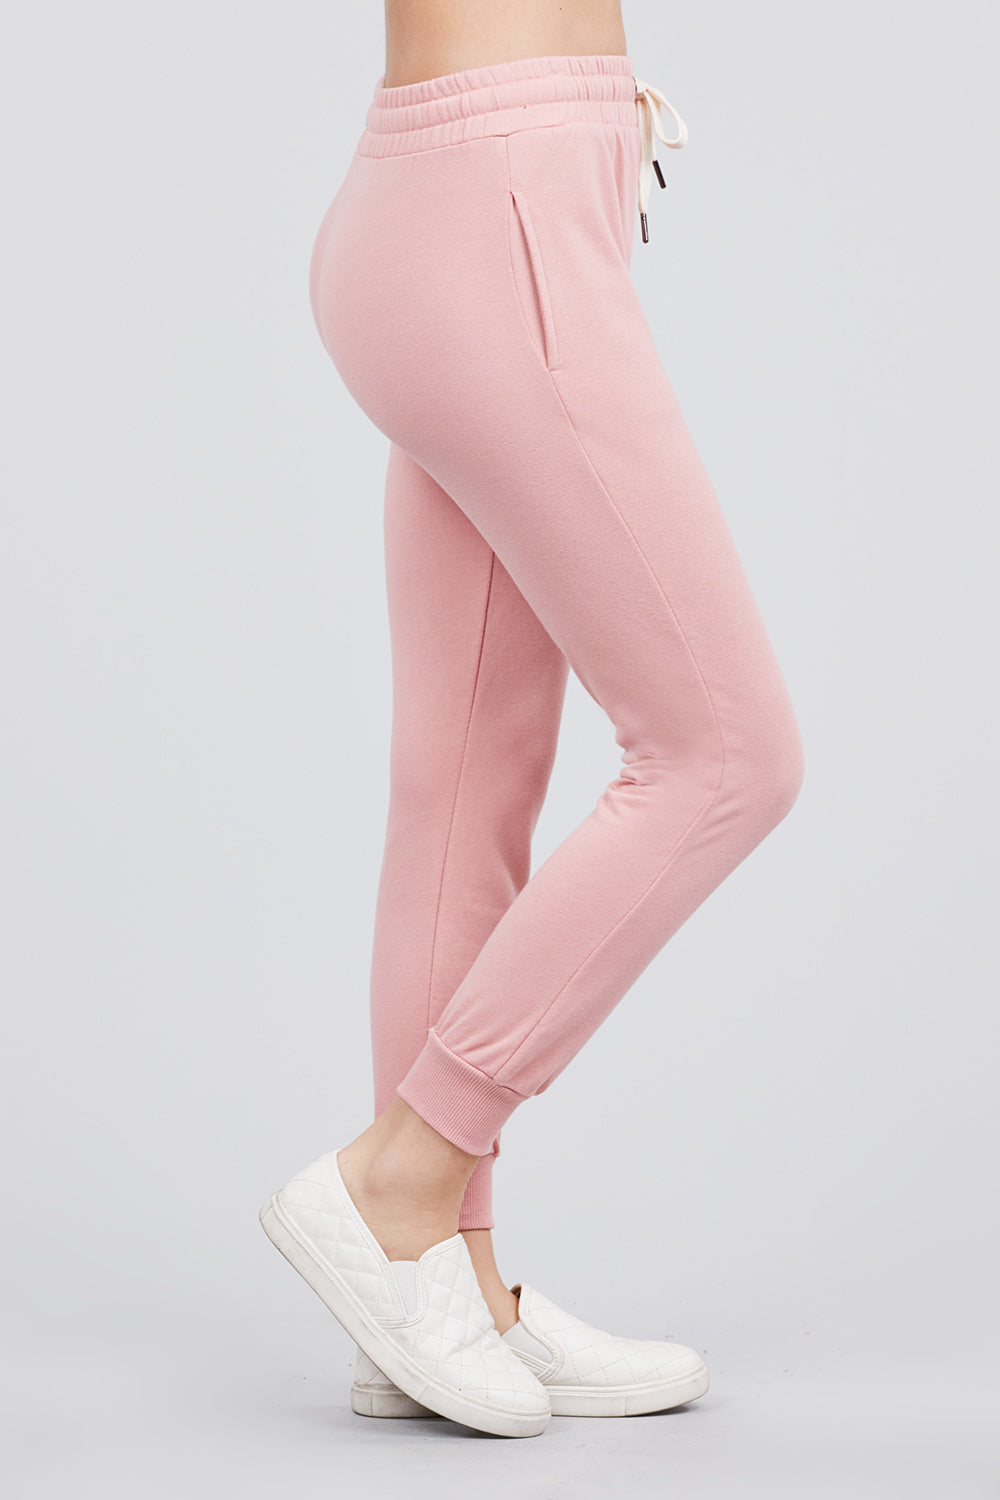 Women's Active Yoga French Terry Black Sweatpants Workout Joggers Pants